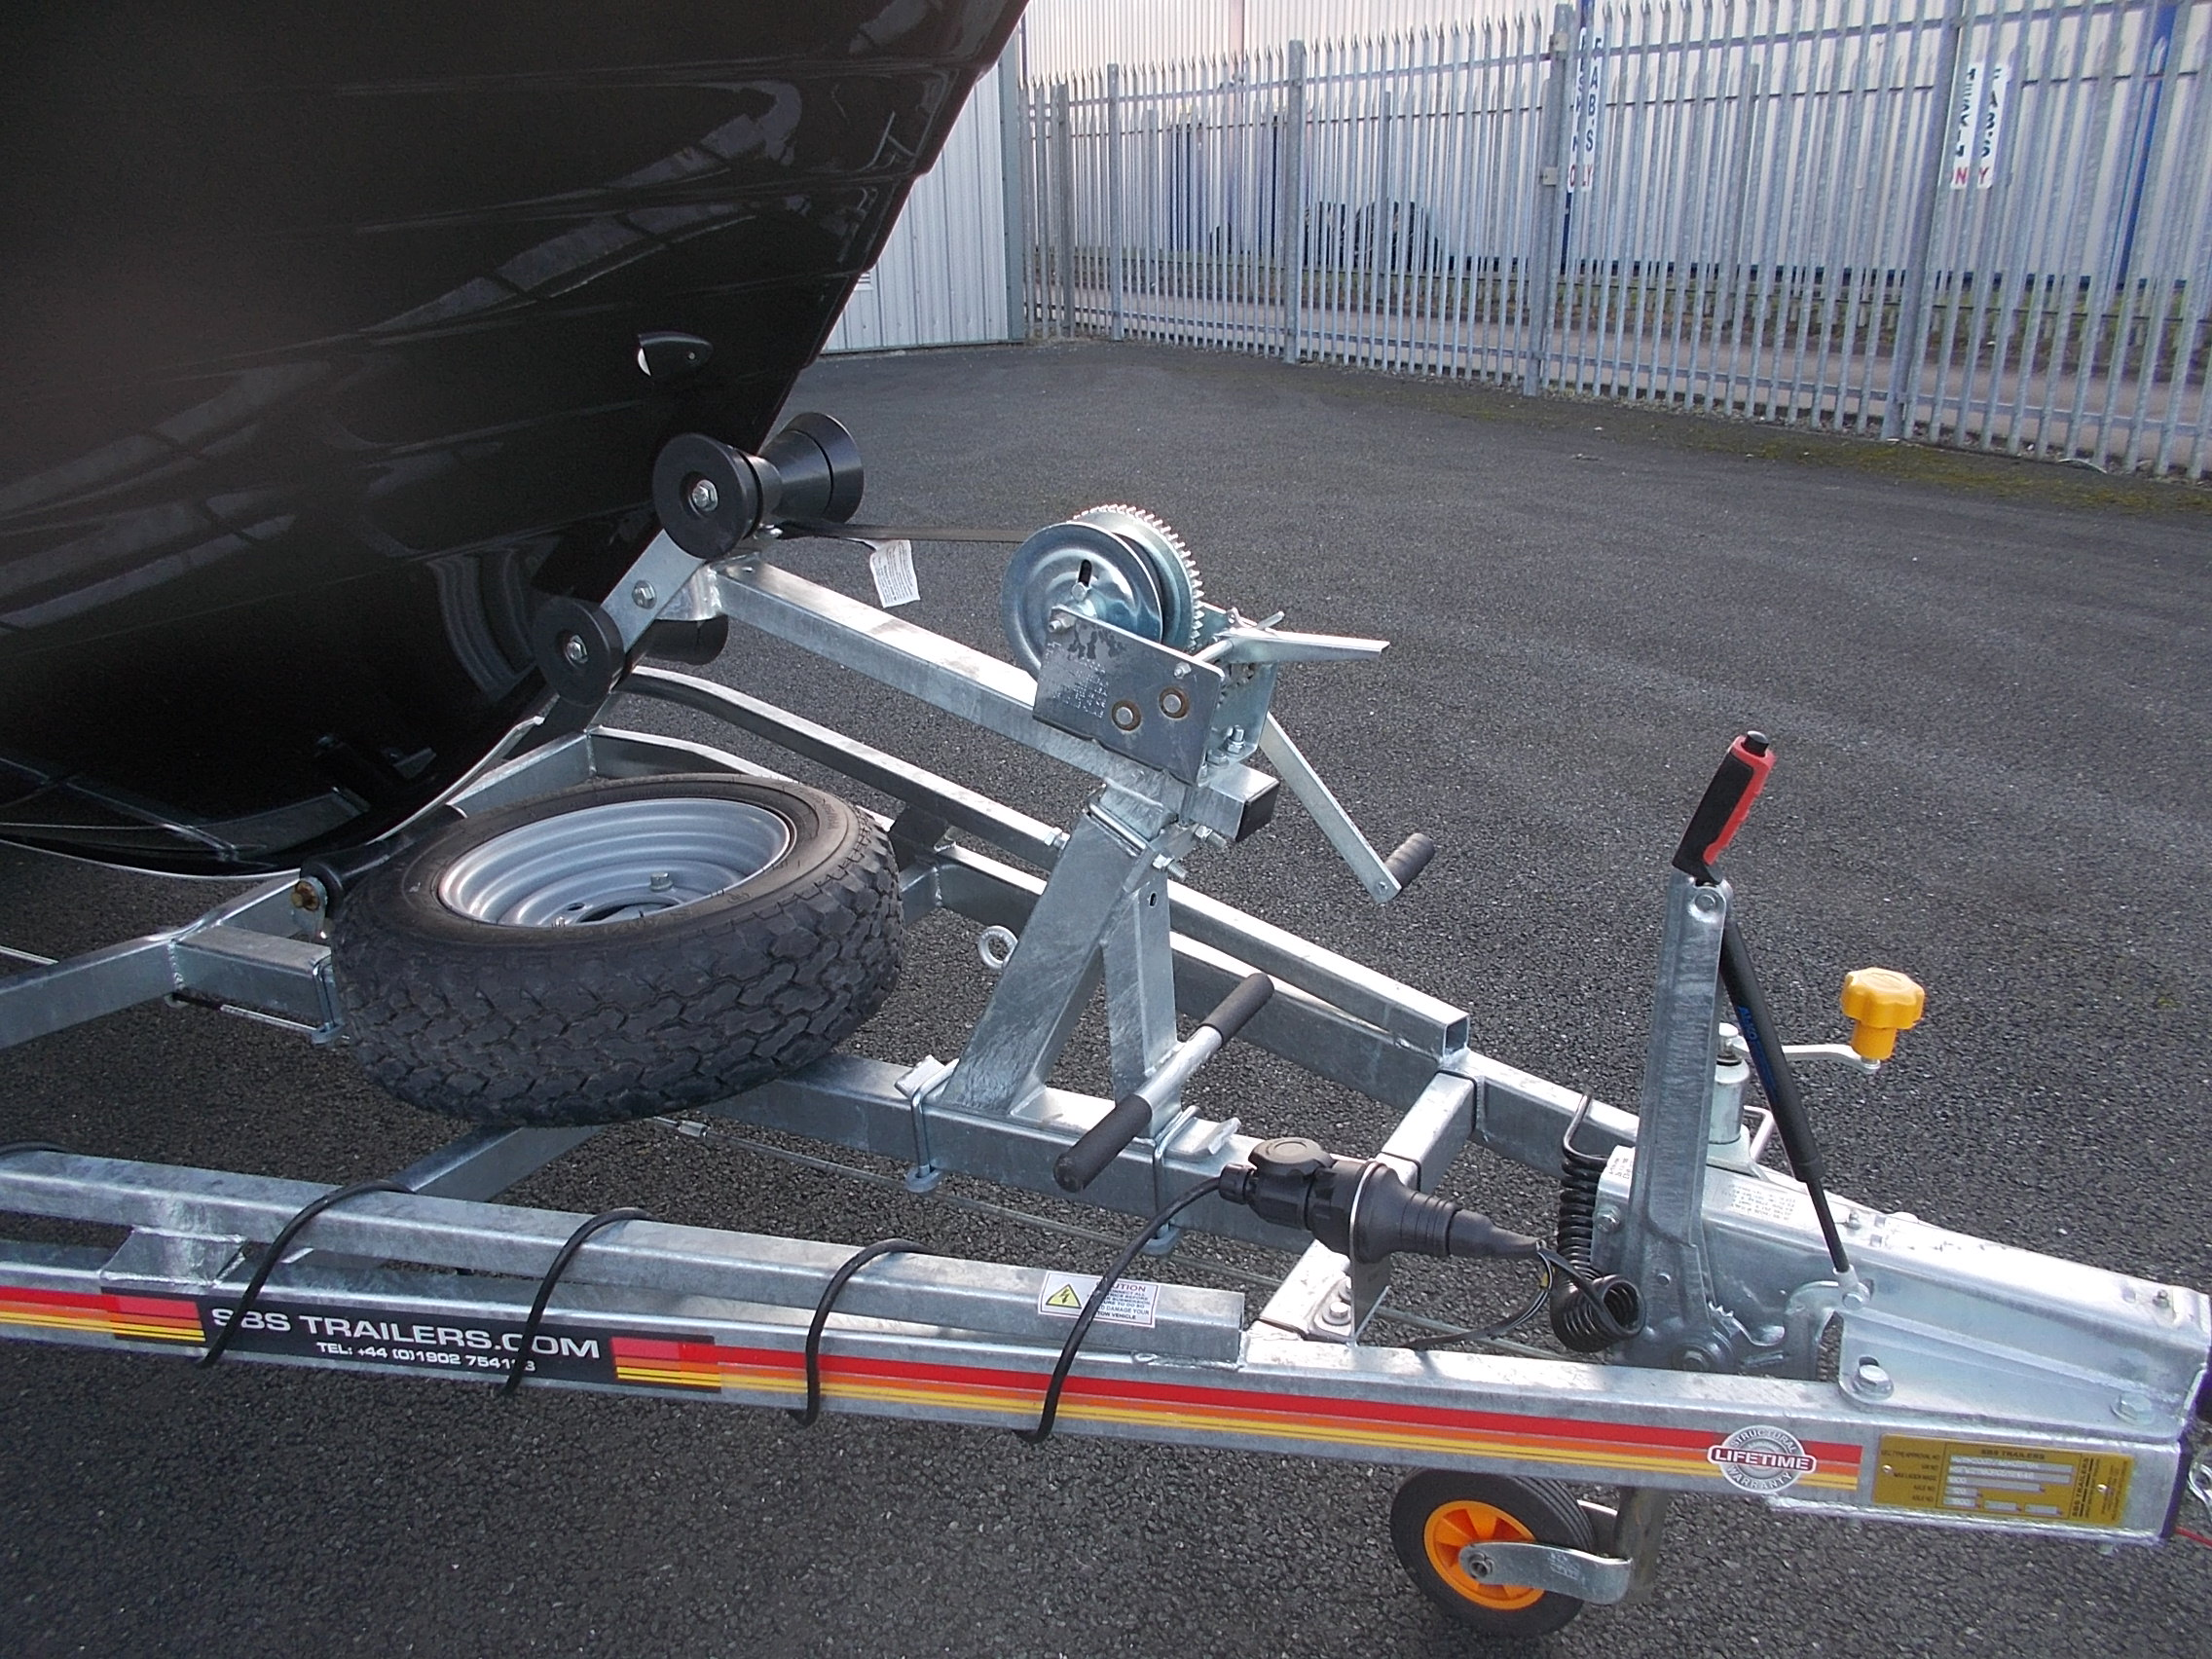 Warrior 175 Front Trailer View